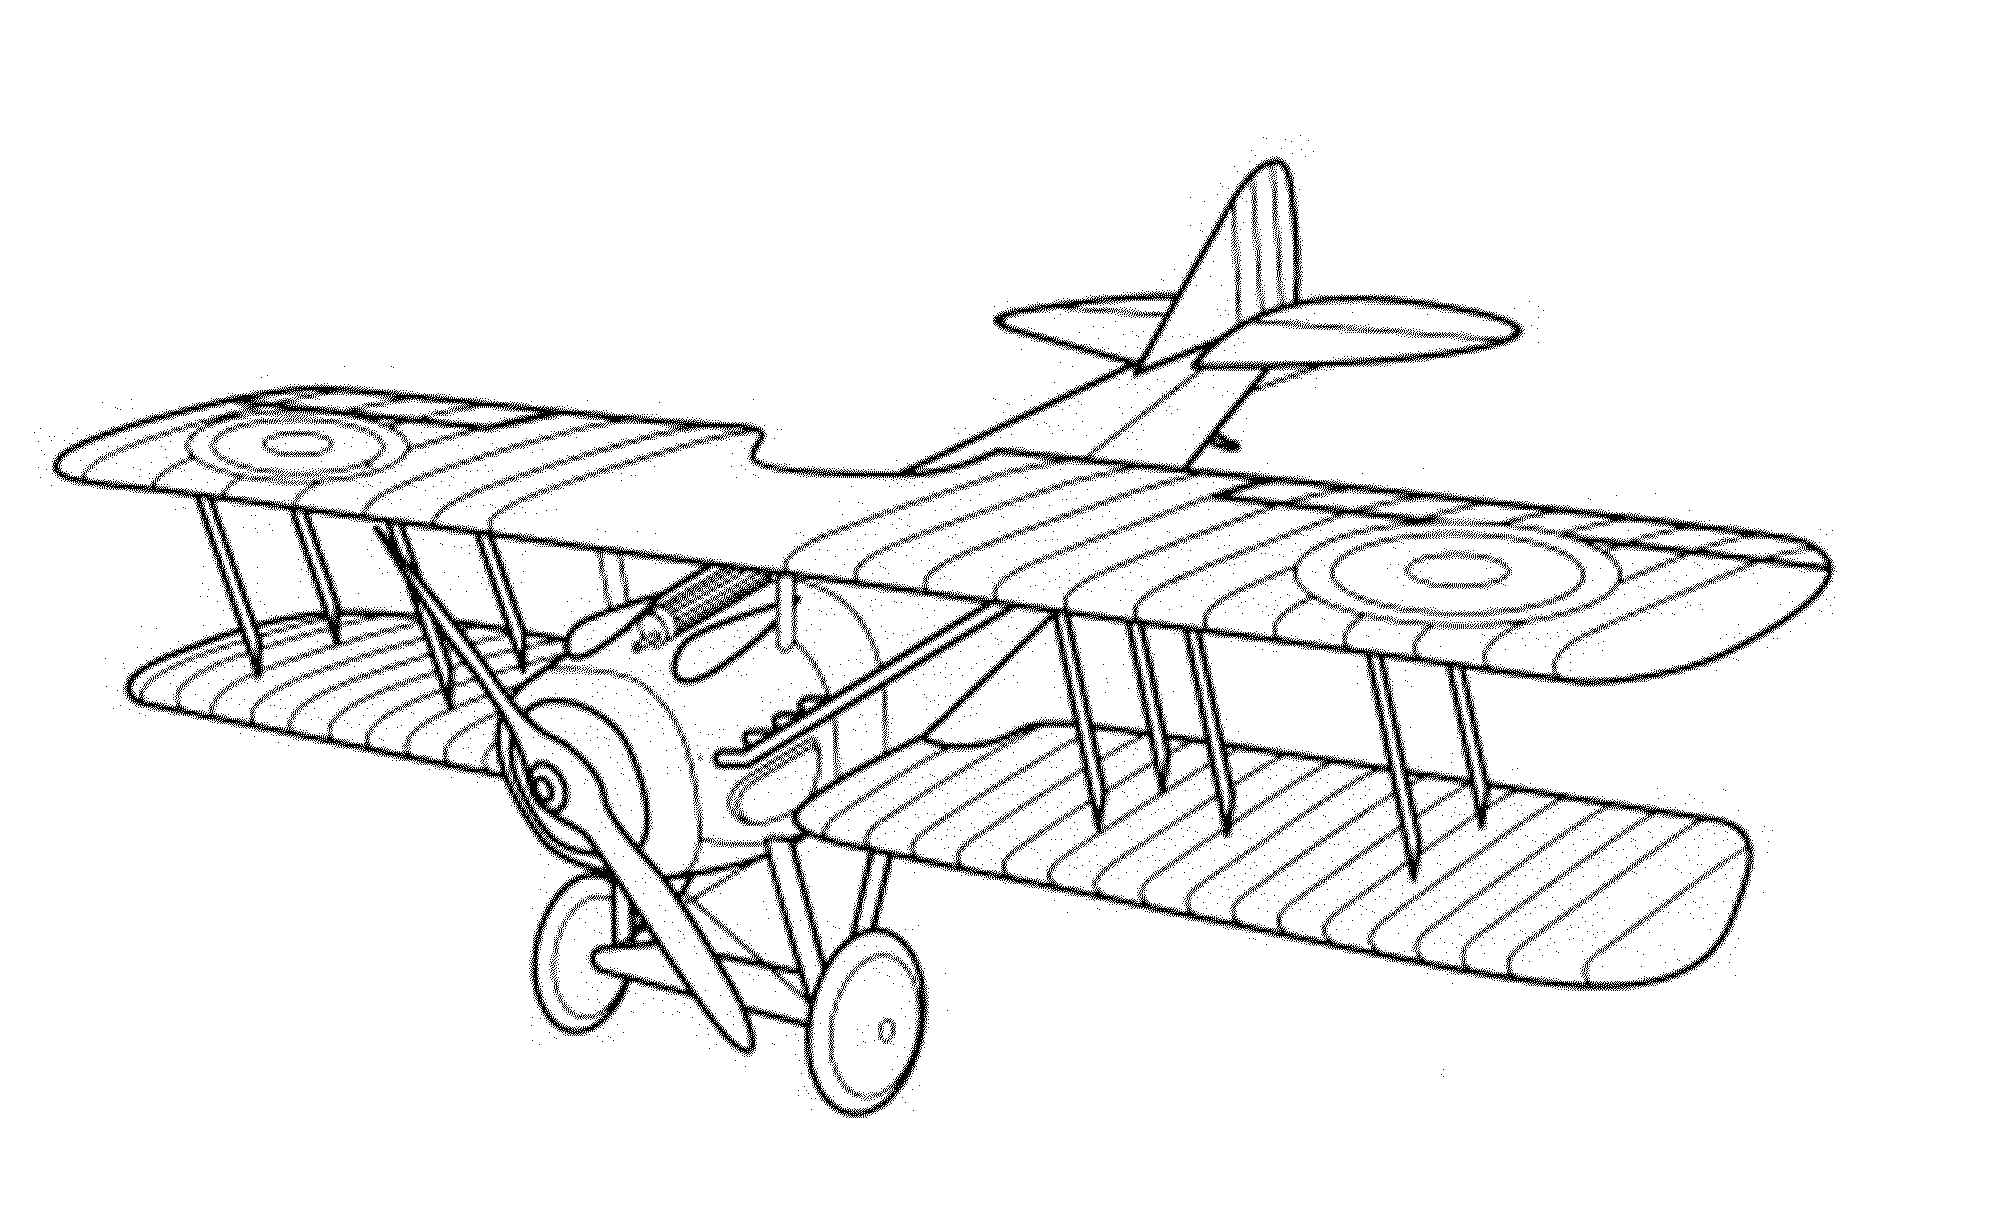 bi plane coloring pages - photo#17